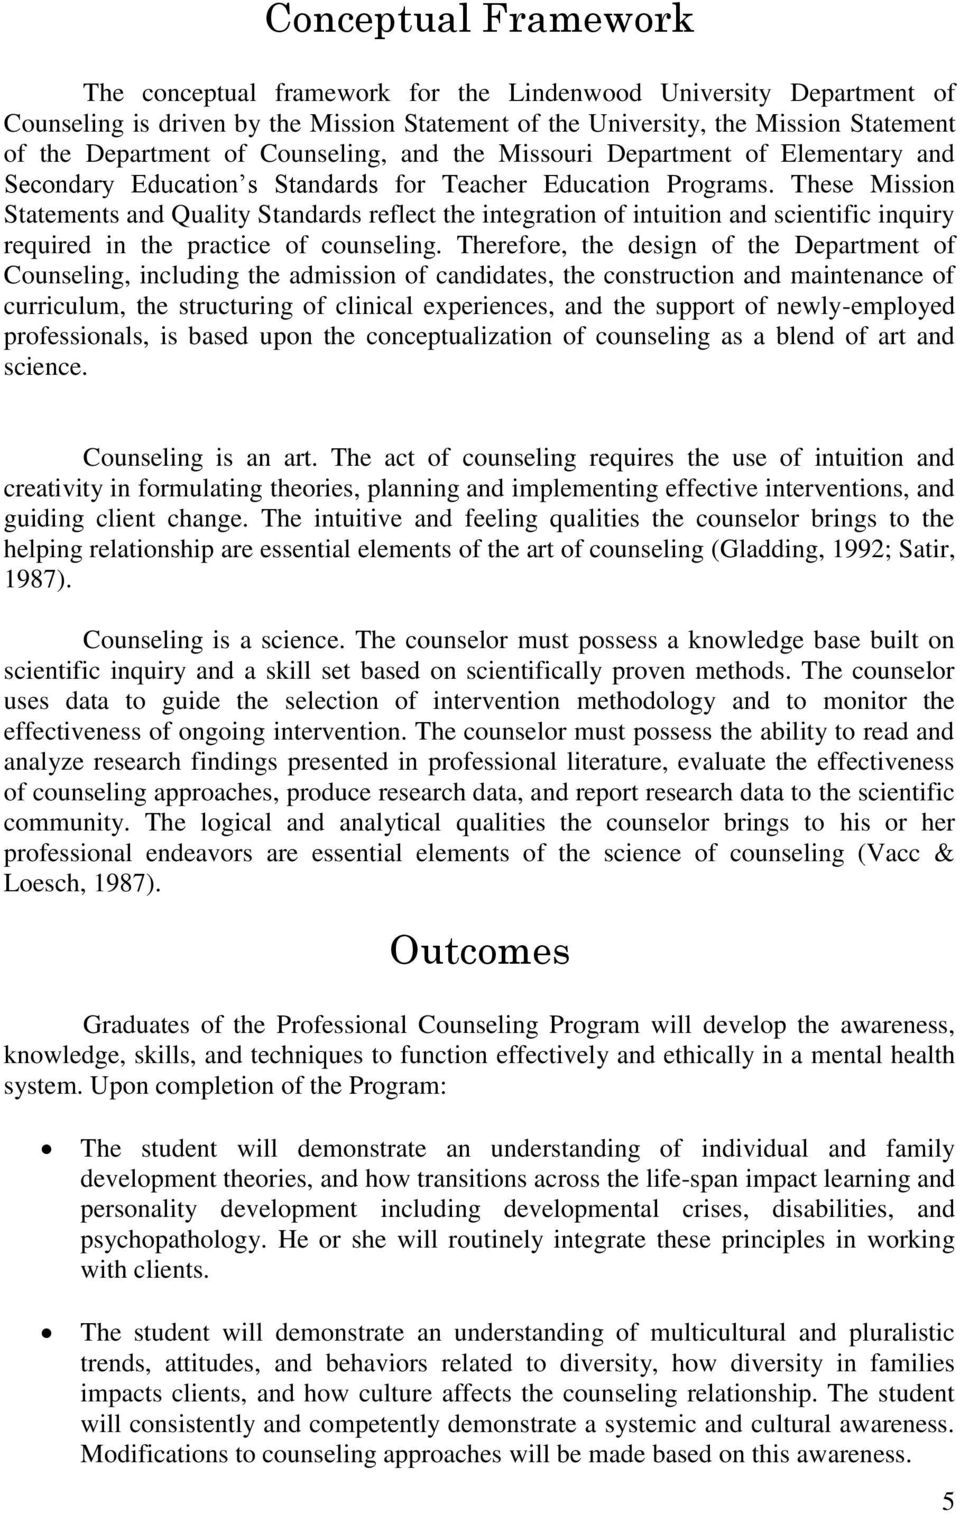 These Mission Statements and Quality Standards reflect the integration of intuition and scientific inquiry required in the practice of counseling.